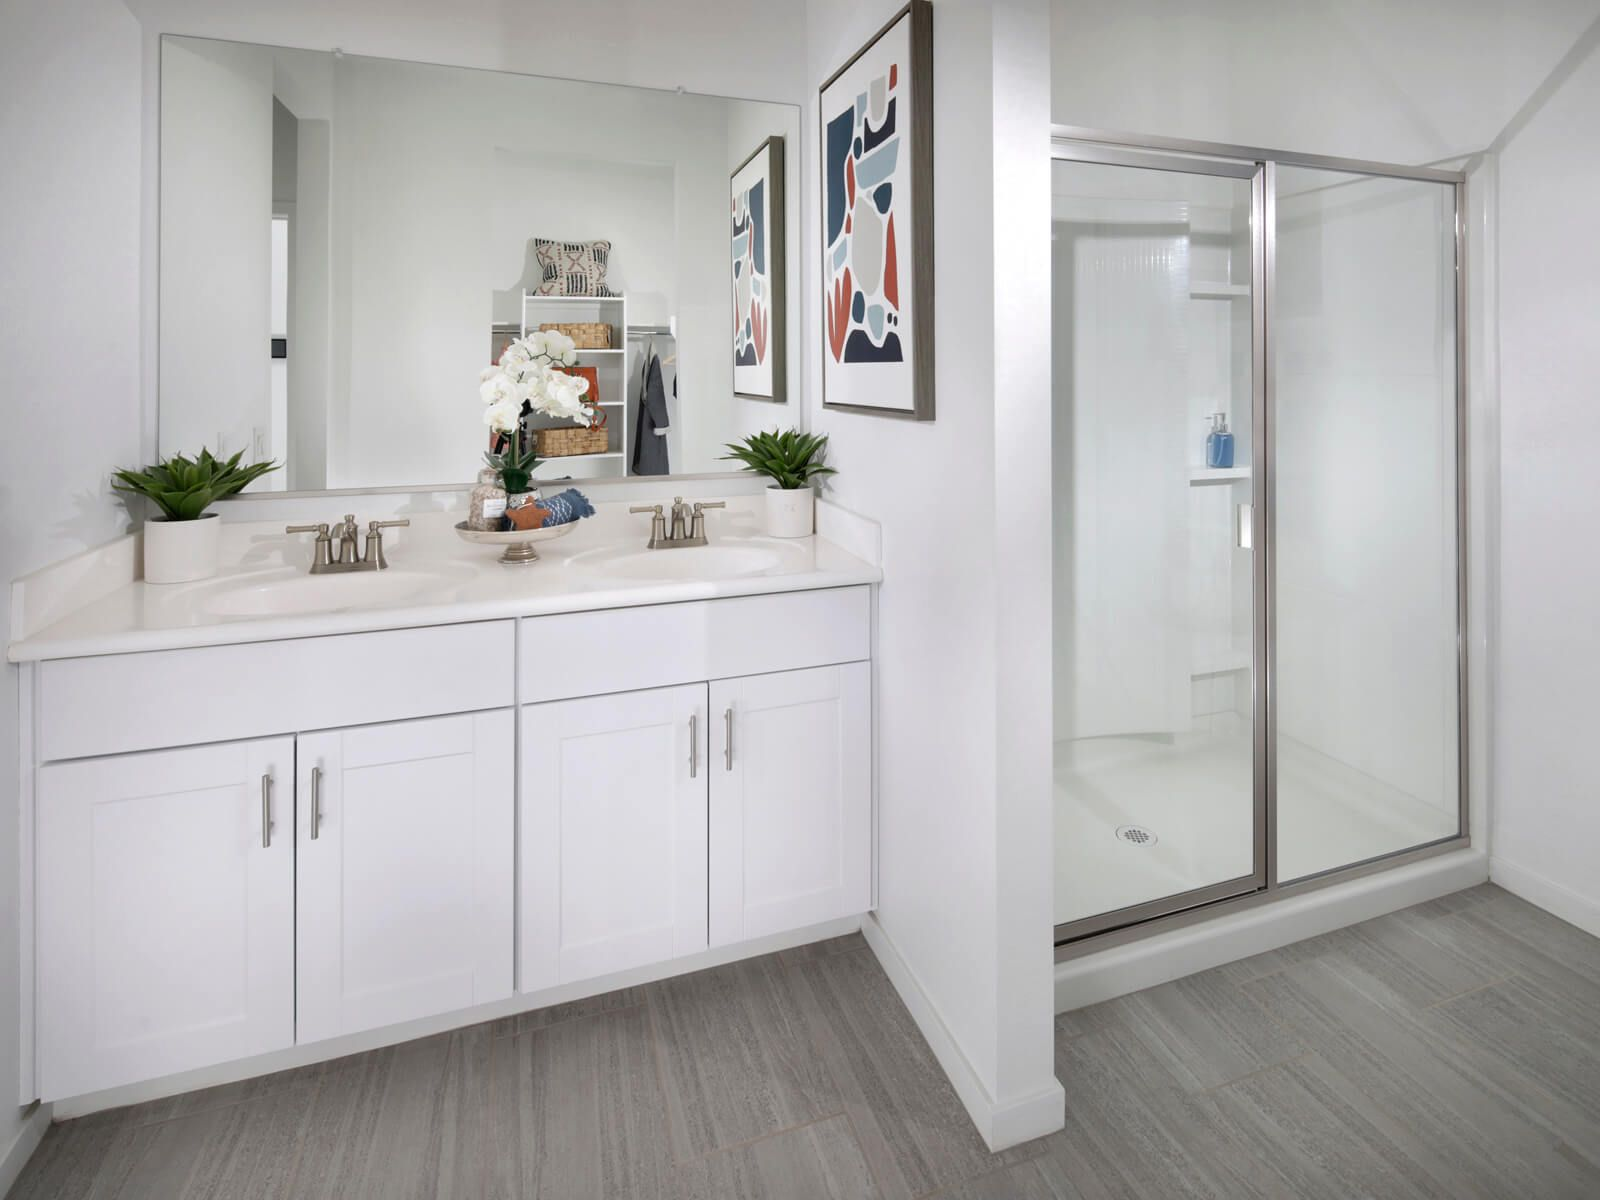 Bathroom featured in the Leslie - 3 Car Garage Included By Meritage Homes in Phoenix-Mesa, AZ